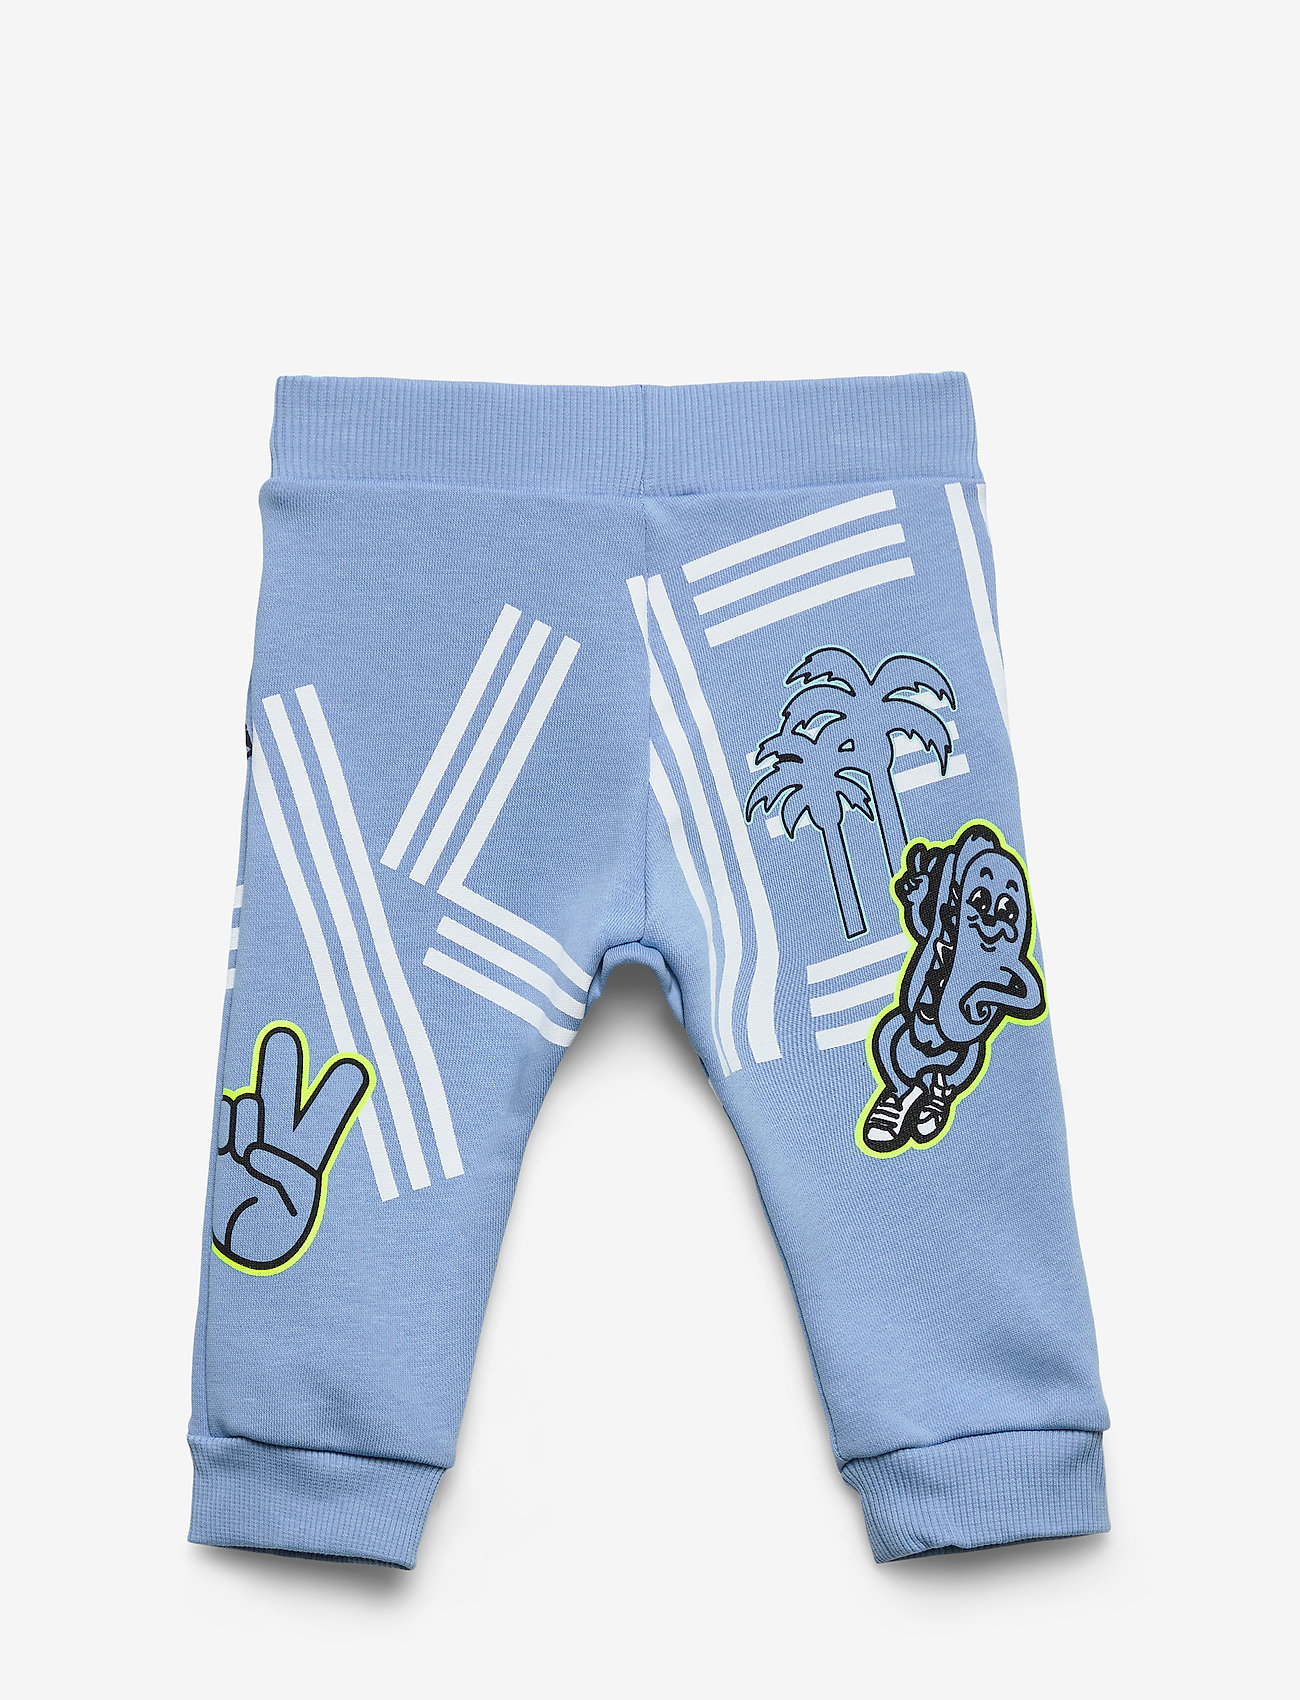 Kenzo - JIORGIO - sweatpants - blue grey - 1